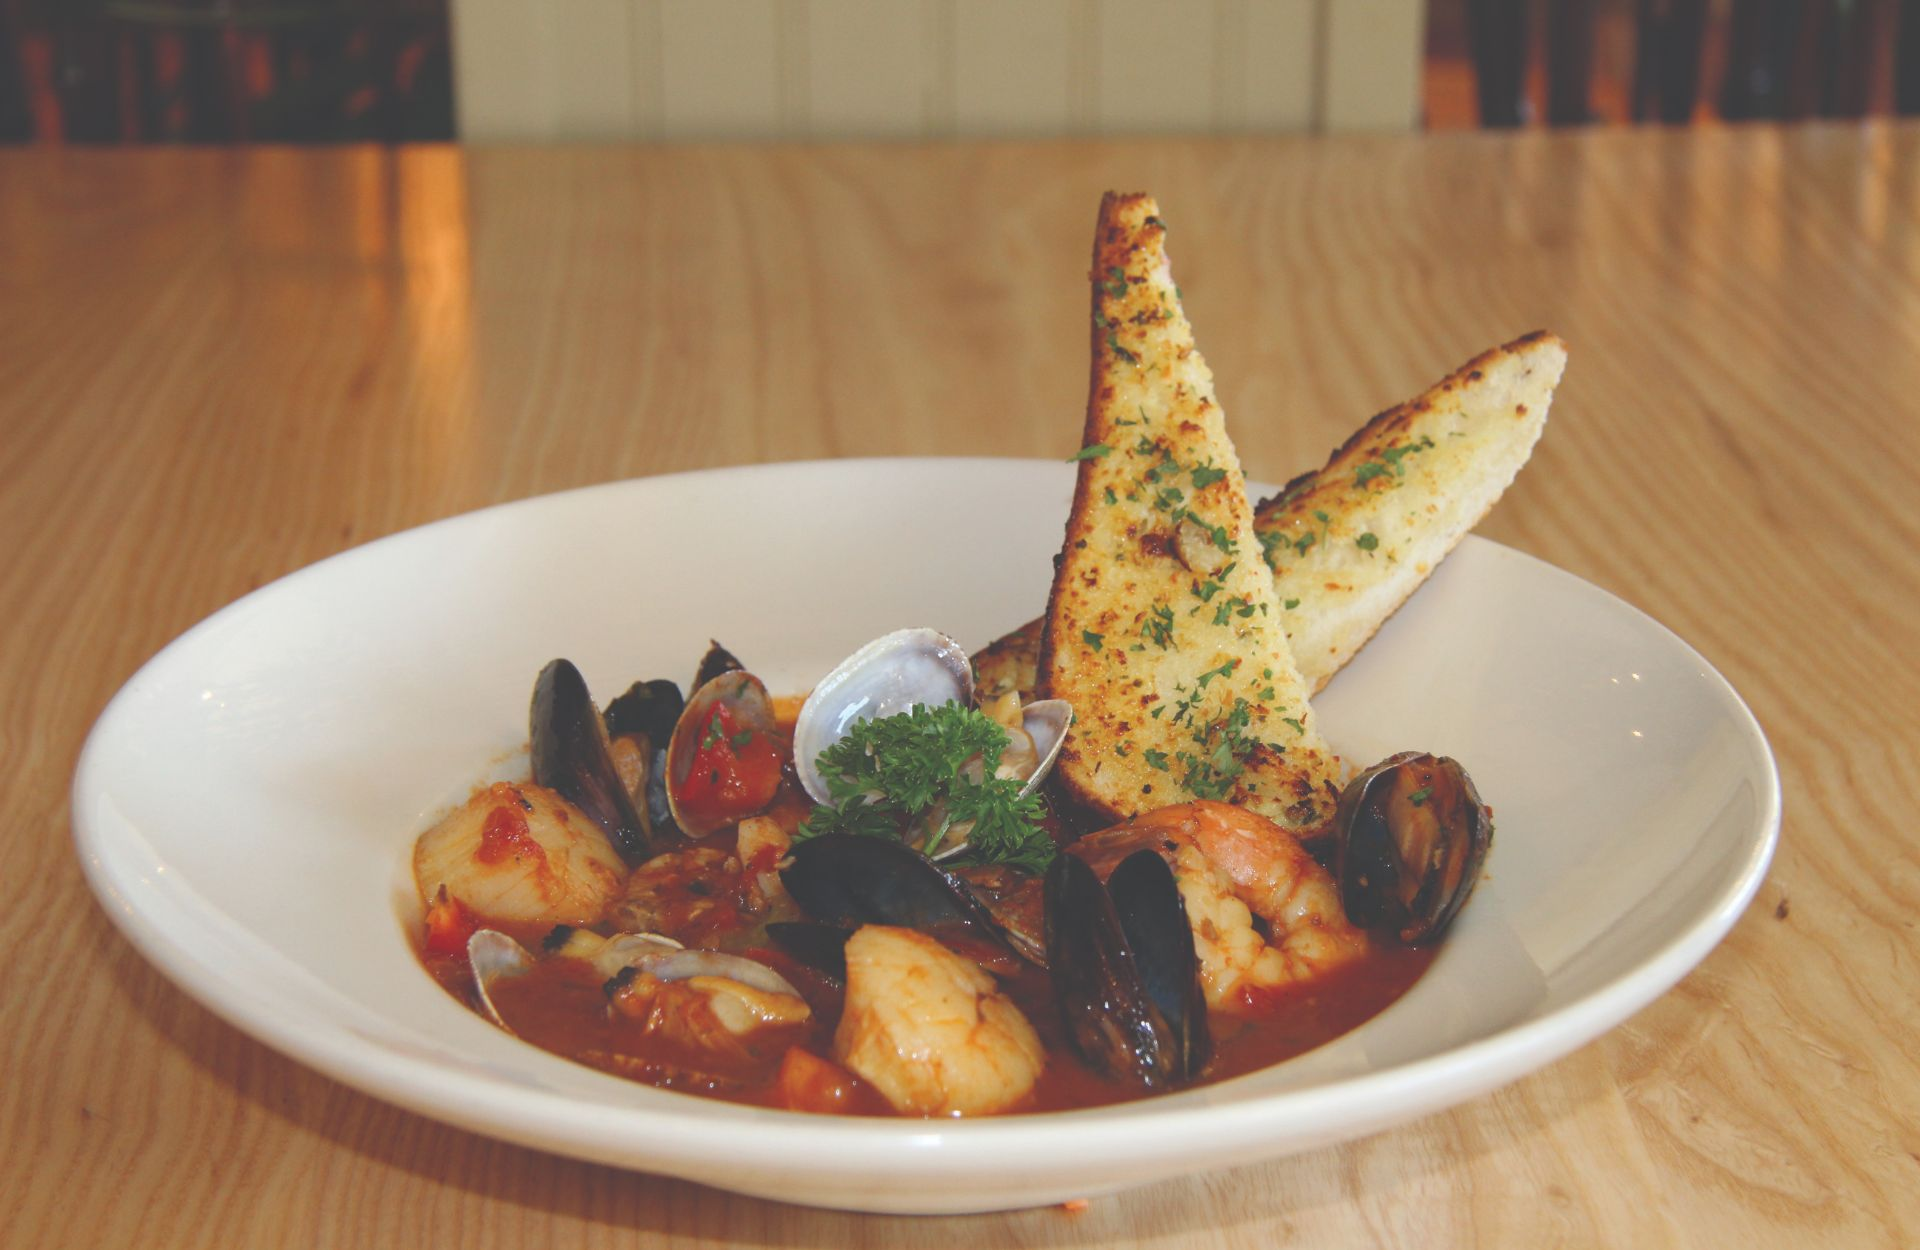 Mussels, clams and scallops in marinara sauce with slices of garlic toasted bread in a white bowl on a wooden table-top